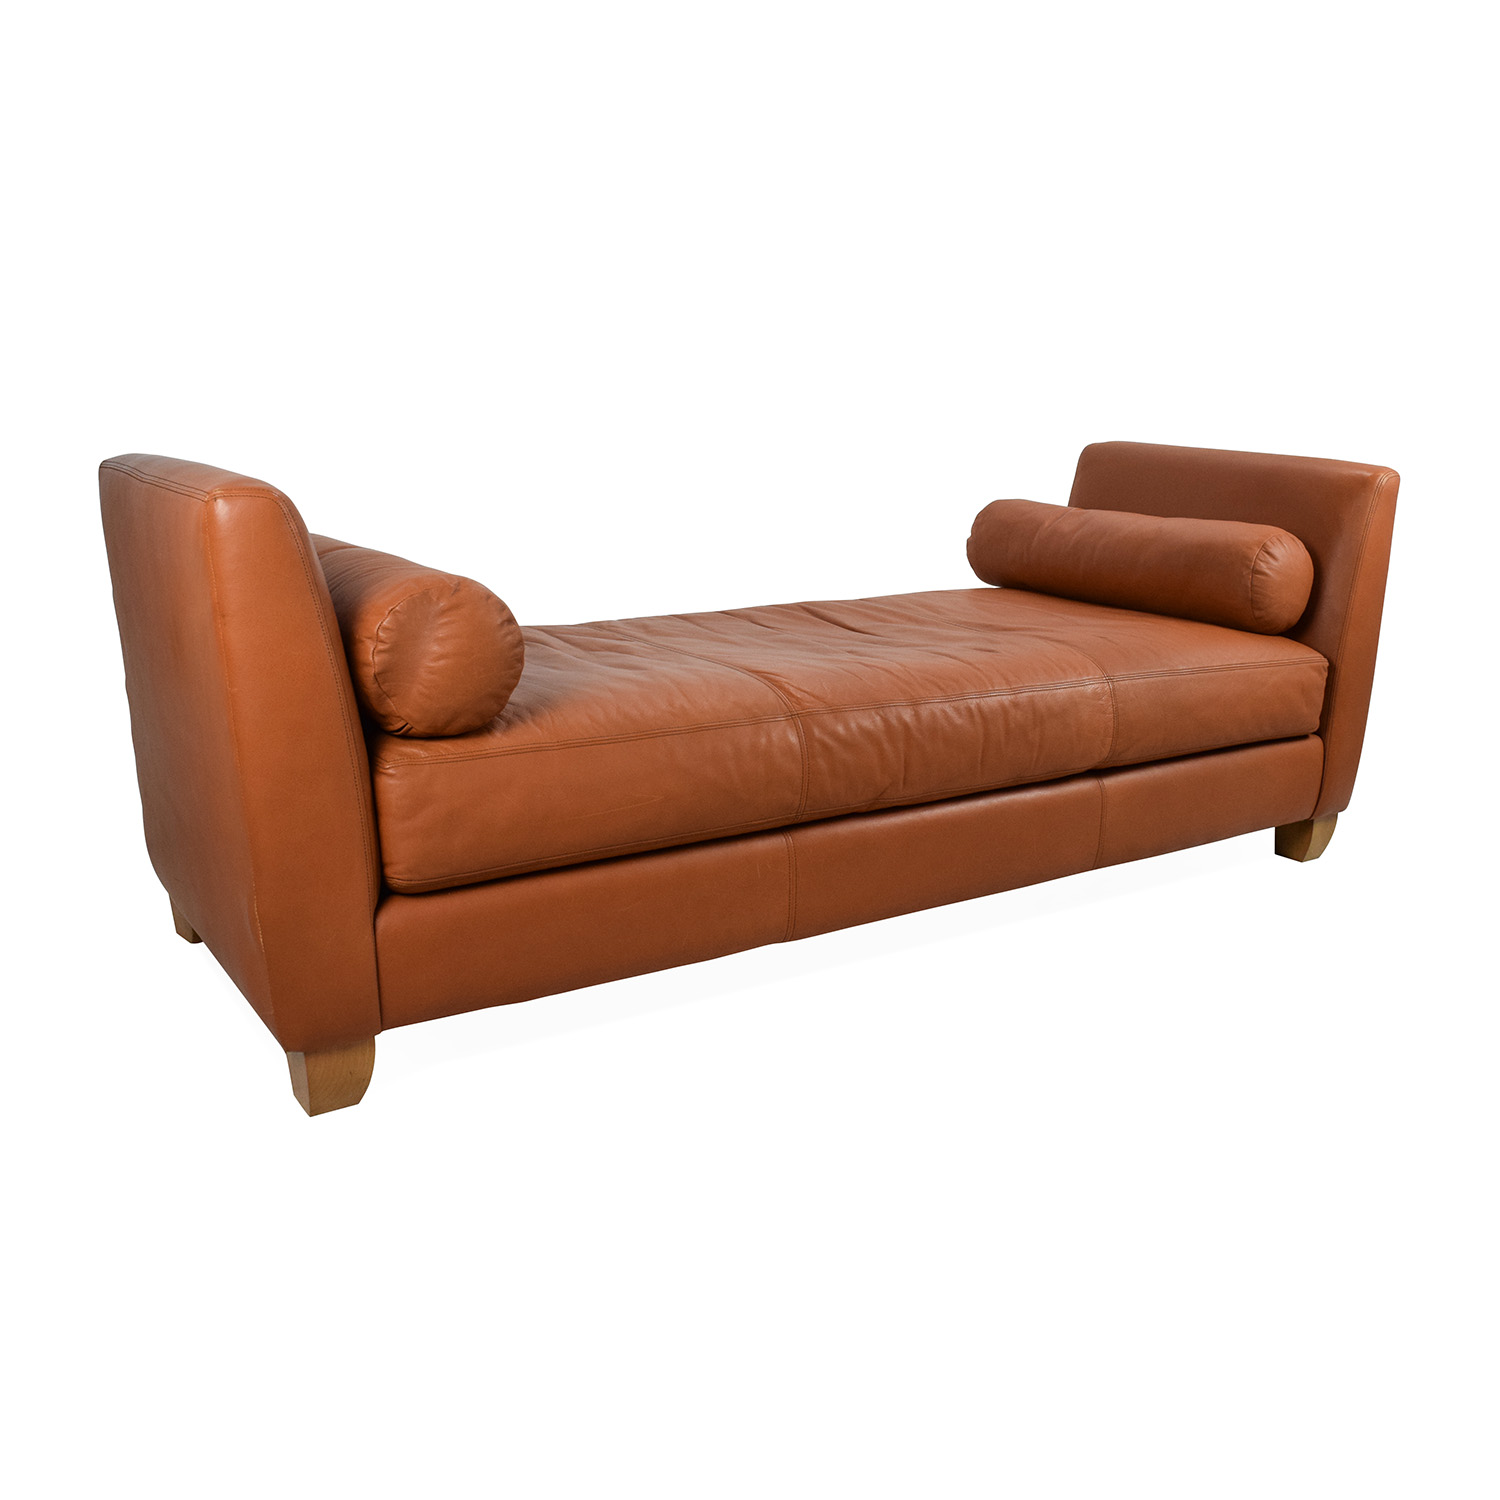 88 Off The Conran Shop Conrad Orange Leather Daybed Sofas